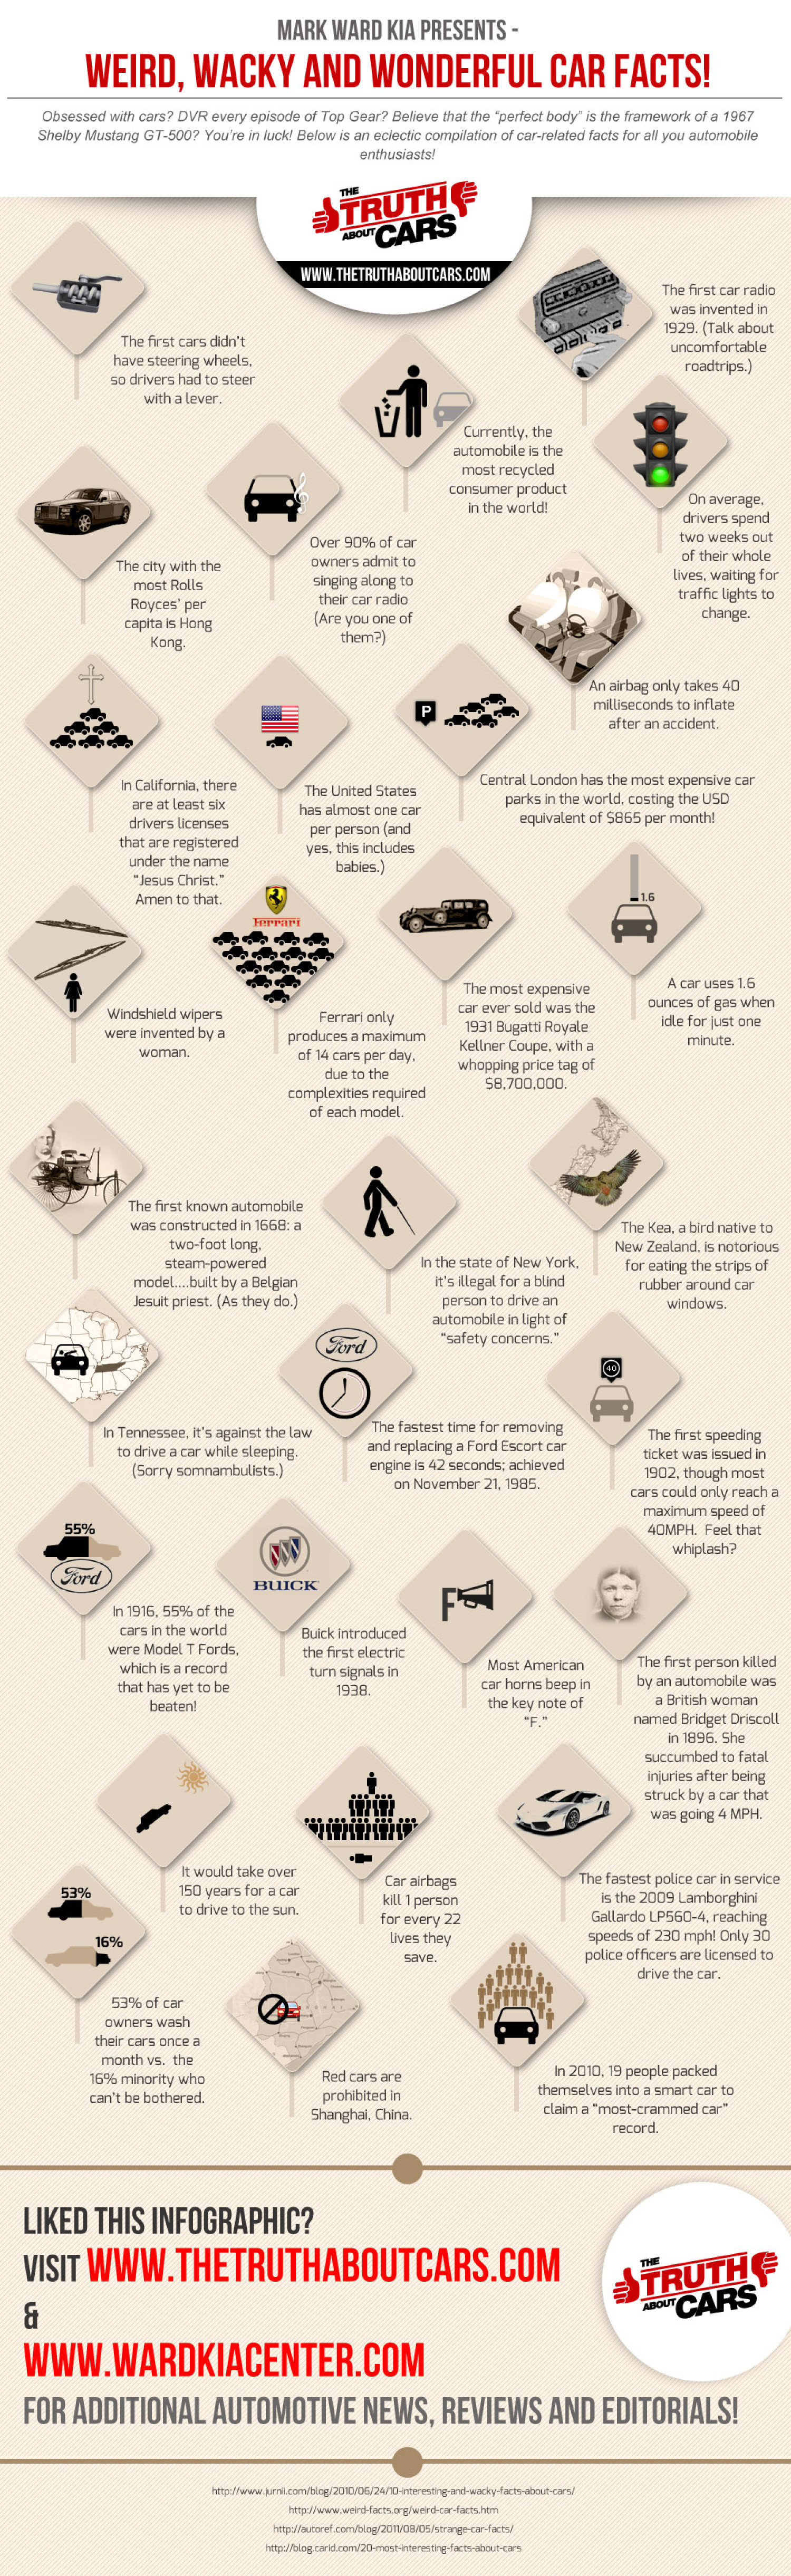 Mark Ward Kia Presents - Weird, Wacky, and Wonderful Car Facts Infographic